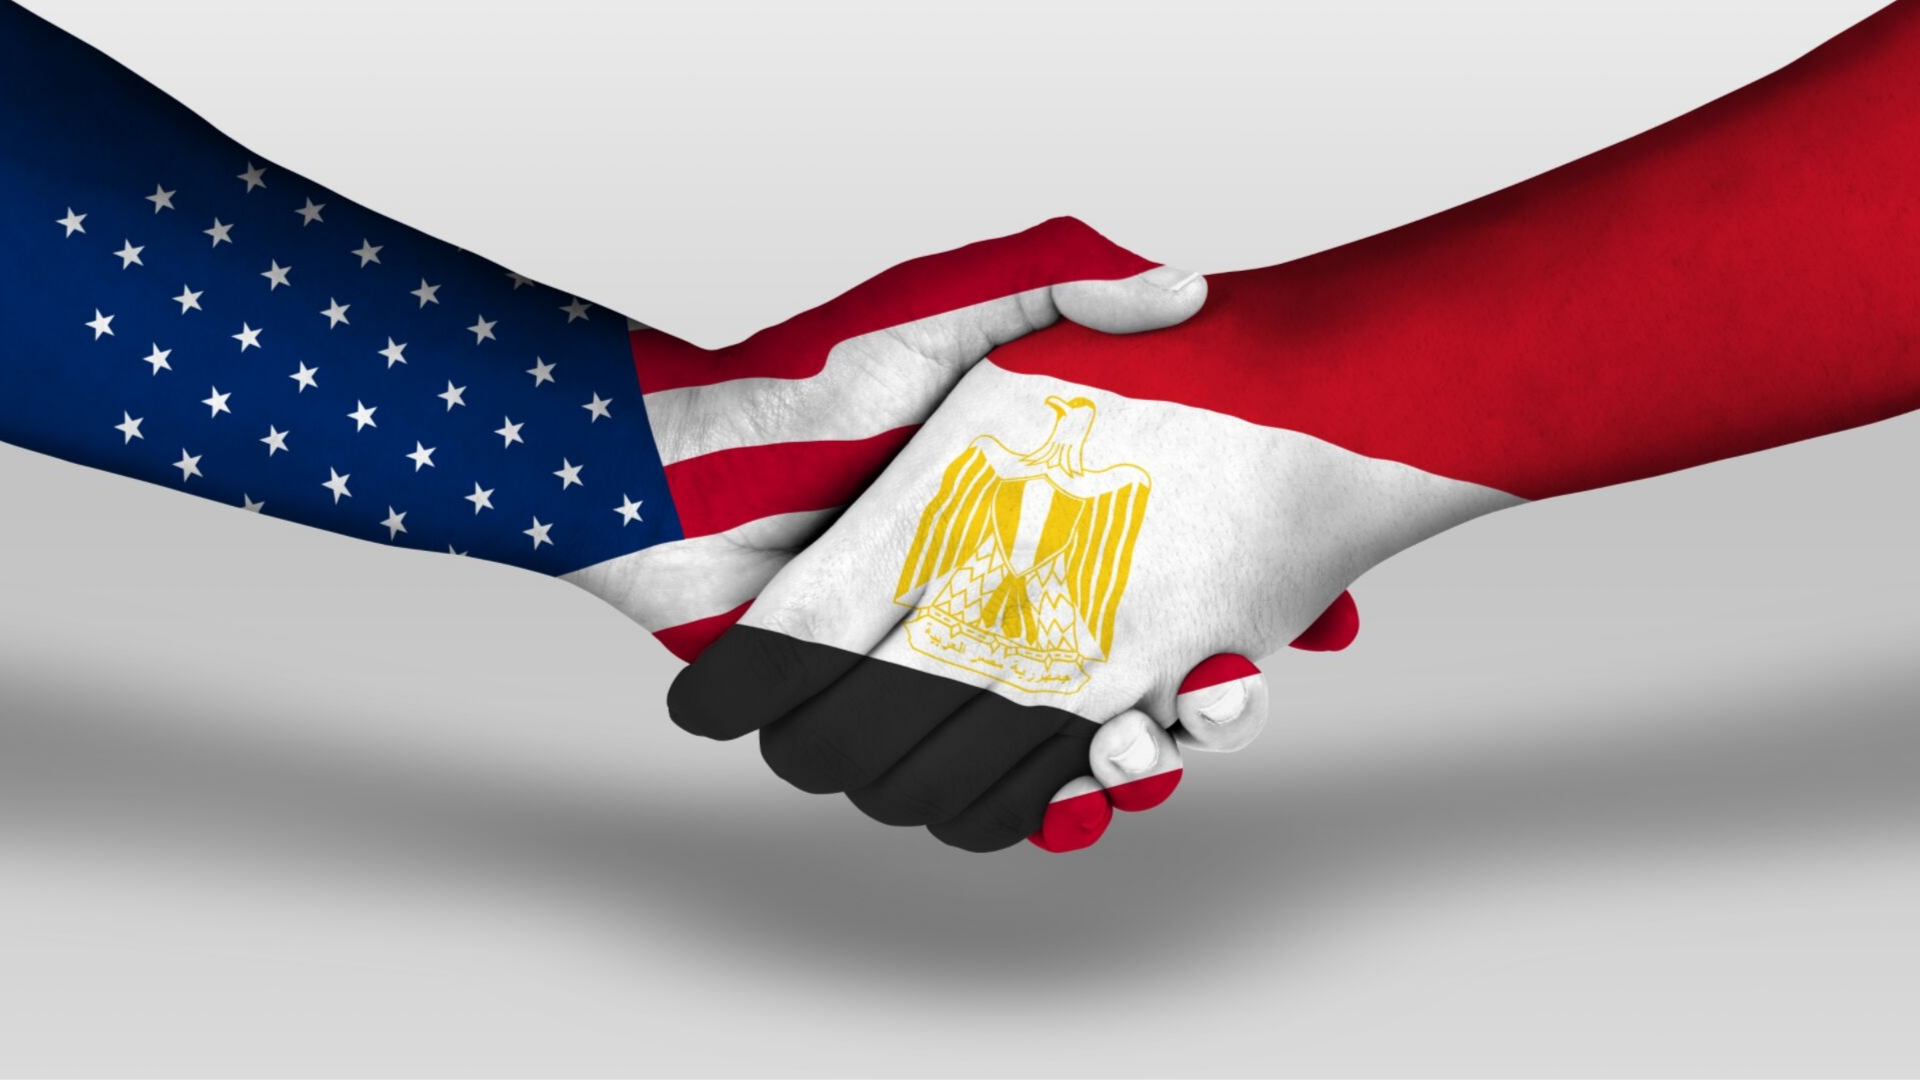 Could Detained American Hurt US-Egypt Relations: 5 Geopolitical Effects You Need to Know